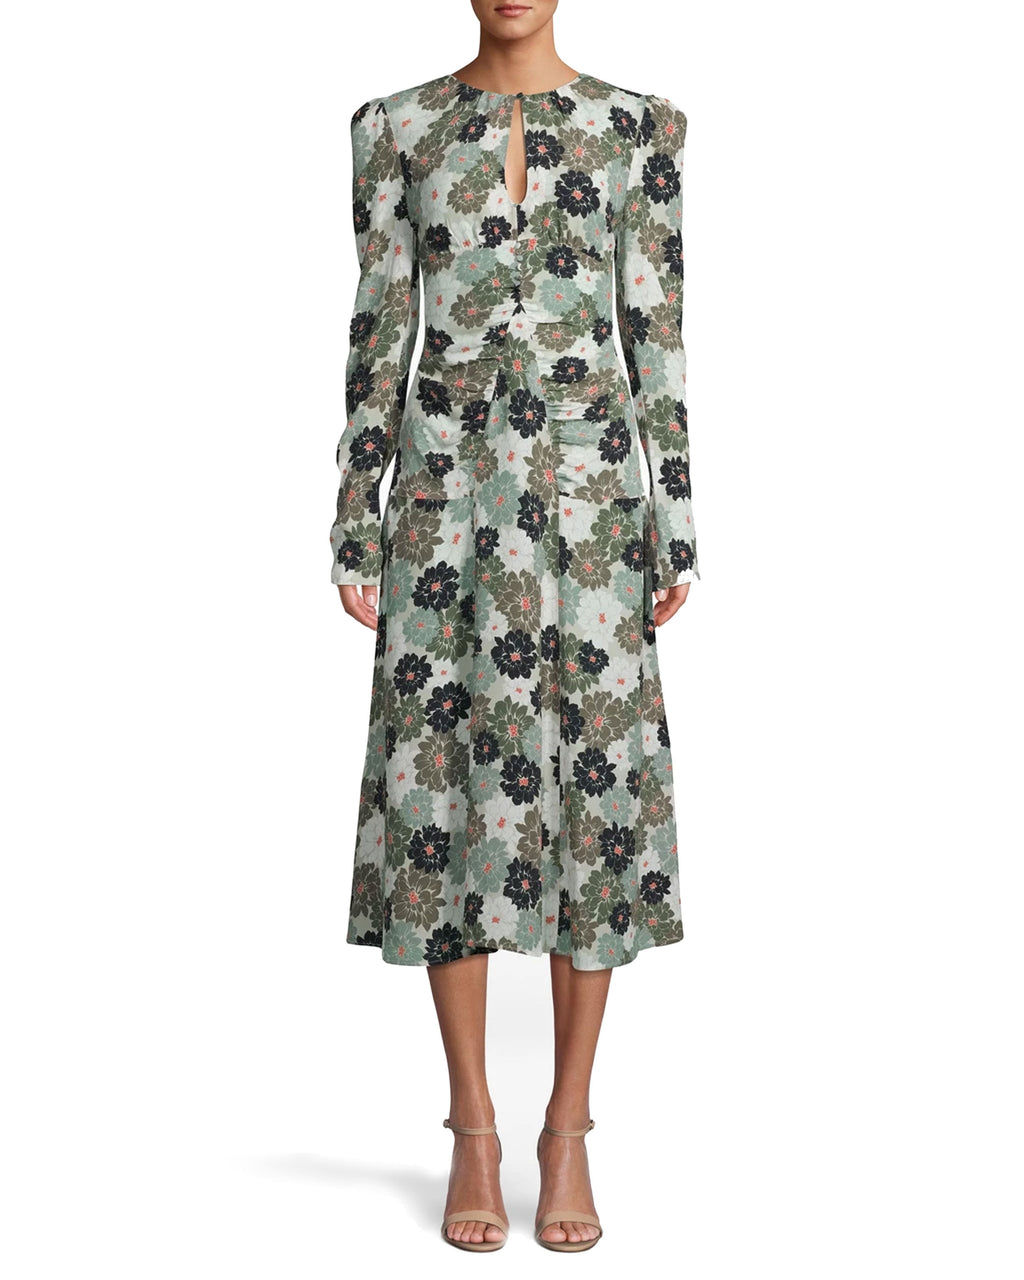 CM17983 - CAMO DELILAH SILK LONG SLEEVE KEYHOLE DRESS - dresses - midi - WITH A BOLD FLORAL PRINT, AIRY SILK FABRIC AND KEYHOLE CUTOUT, THIS MIDI DRESS WAS MADE FOR LATE SUMMER SOIREES. THE SLEEVES FEATURE A SUBLTE PUFF DETAIL WHILE THE WAIST IS RUCHED FOR A SLIMMING FIT. KEYHOLE BACK WITH BUTTONS FOR CLOSURE. Add 1 line break STYLIST TIP: WEAR WITH NEUTRAL HEELS AND SIMPLE JEWELRY.